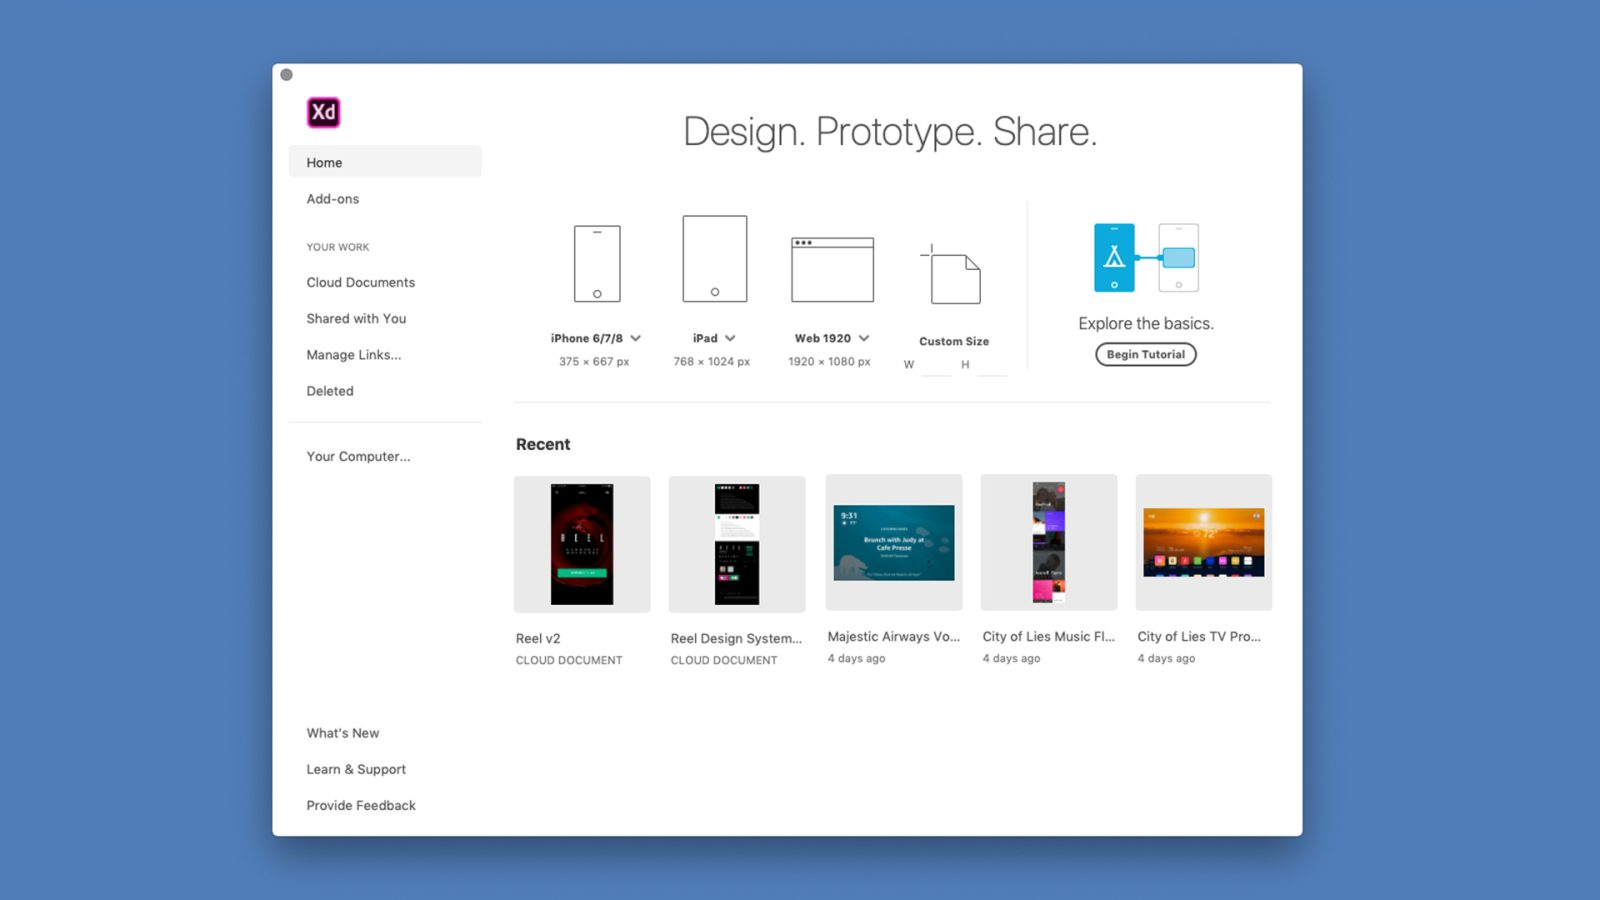 Adobe XD adds cloud document support, live collaboration